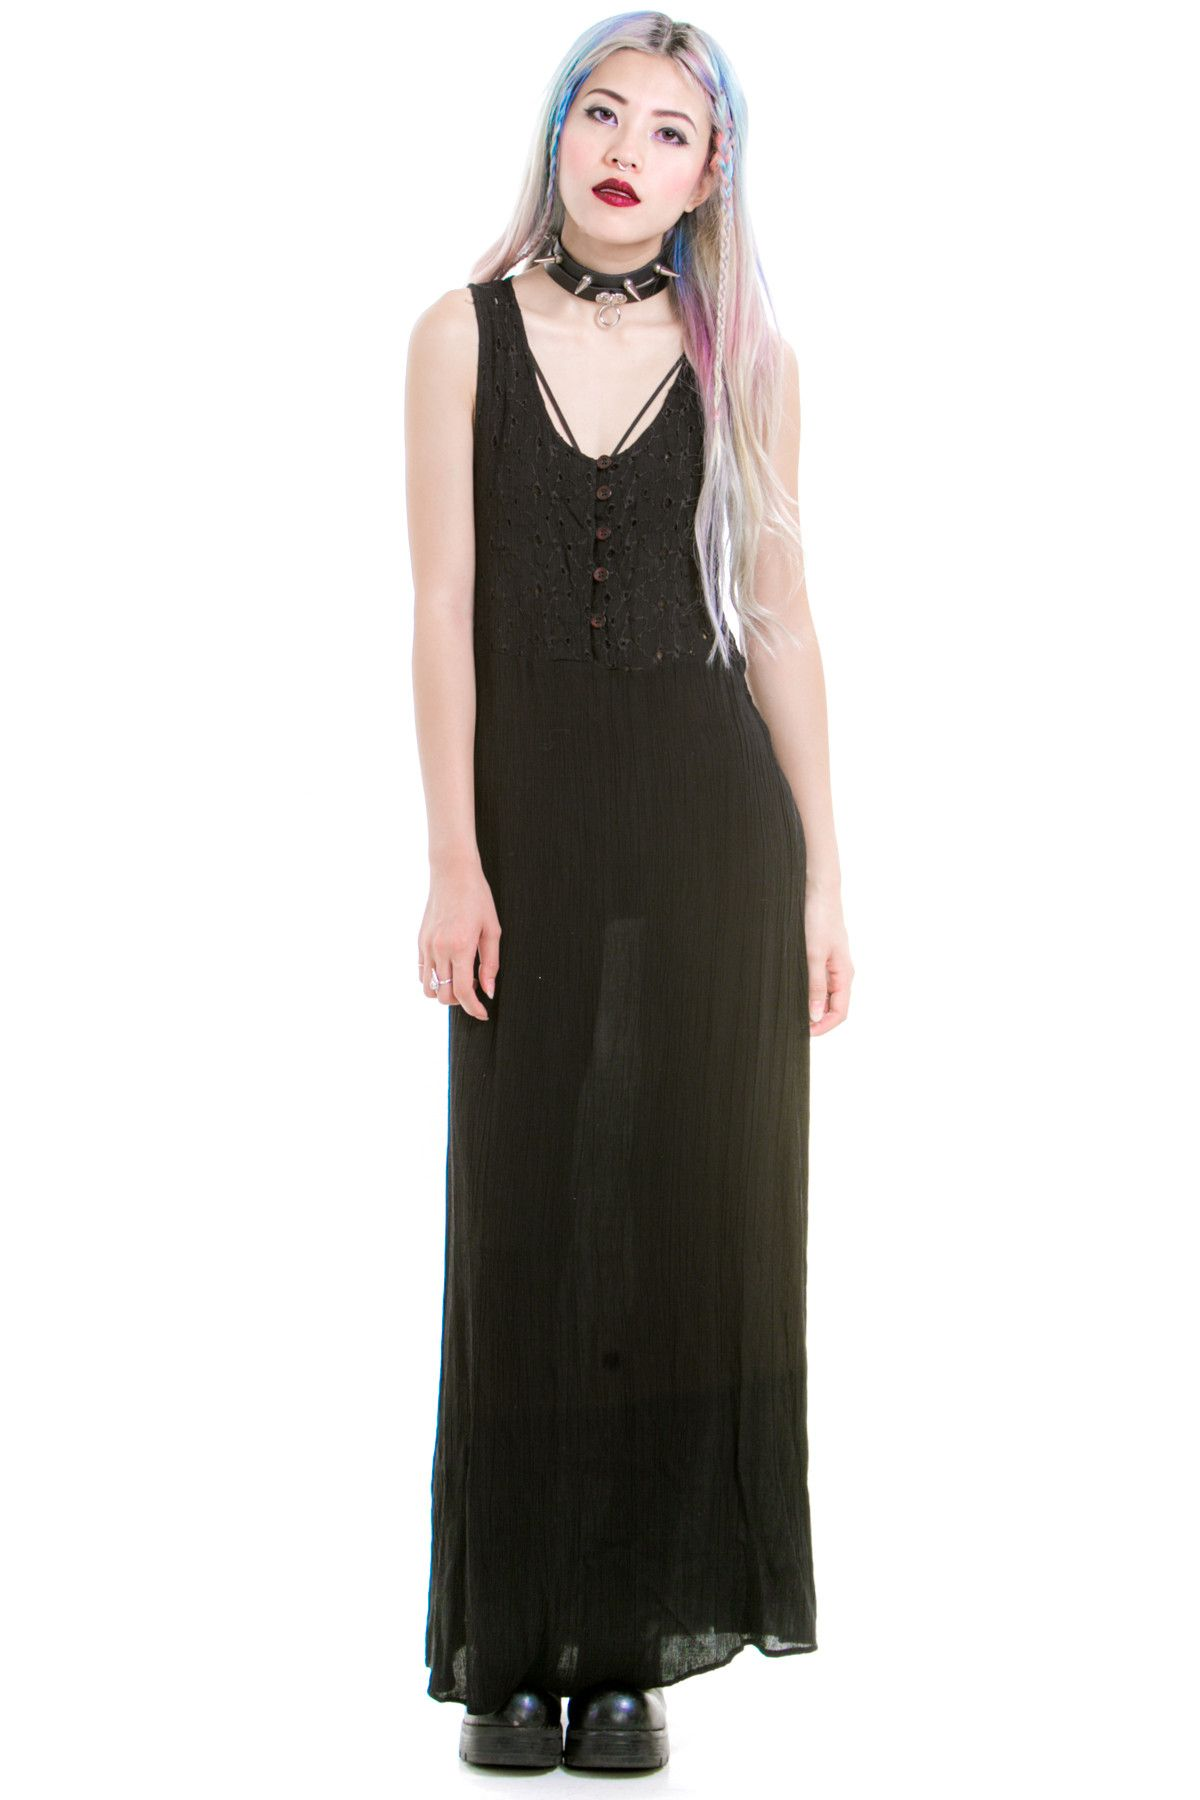 Vintage Season of the Witch Dress - XS/S/M